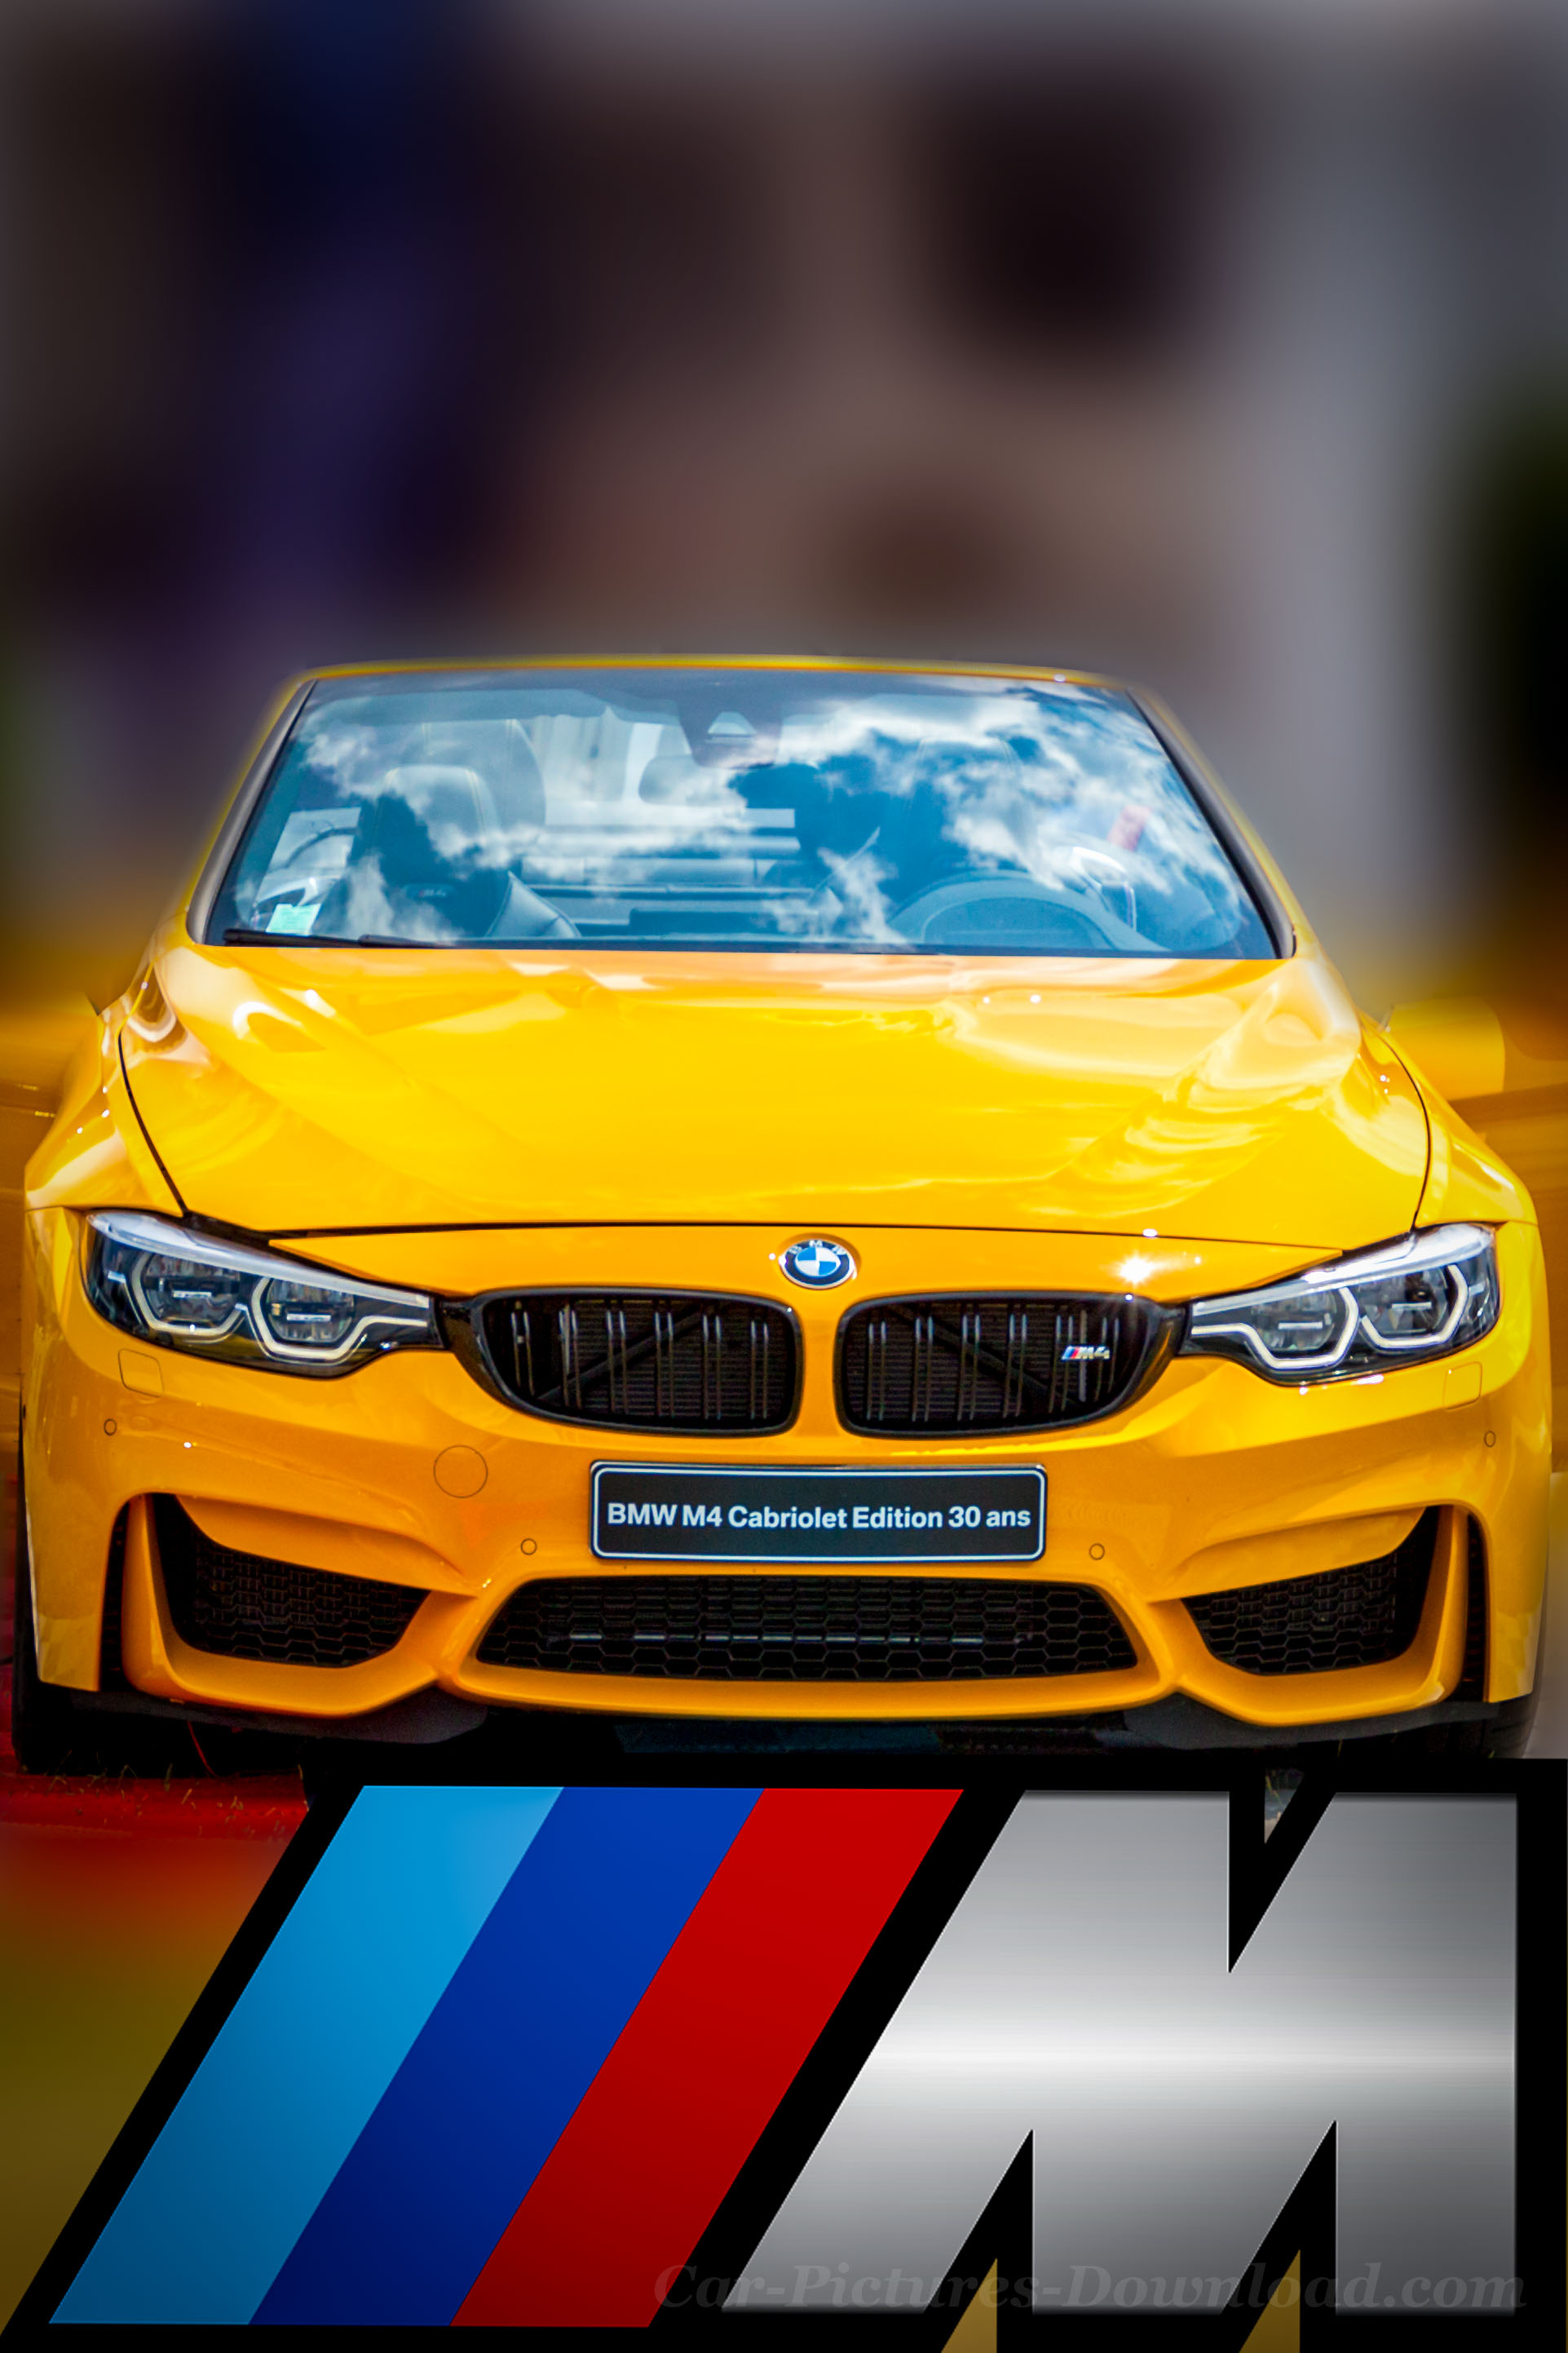 BMW M4 Wallpaper Pictures   Ultra HD Images Download   For All Devices 1923x2885